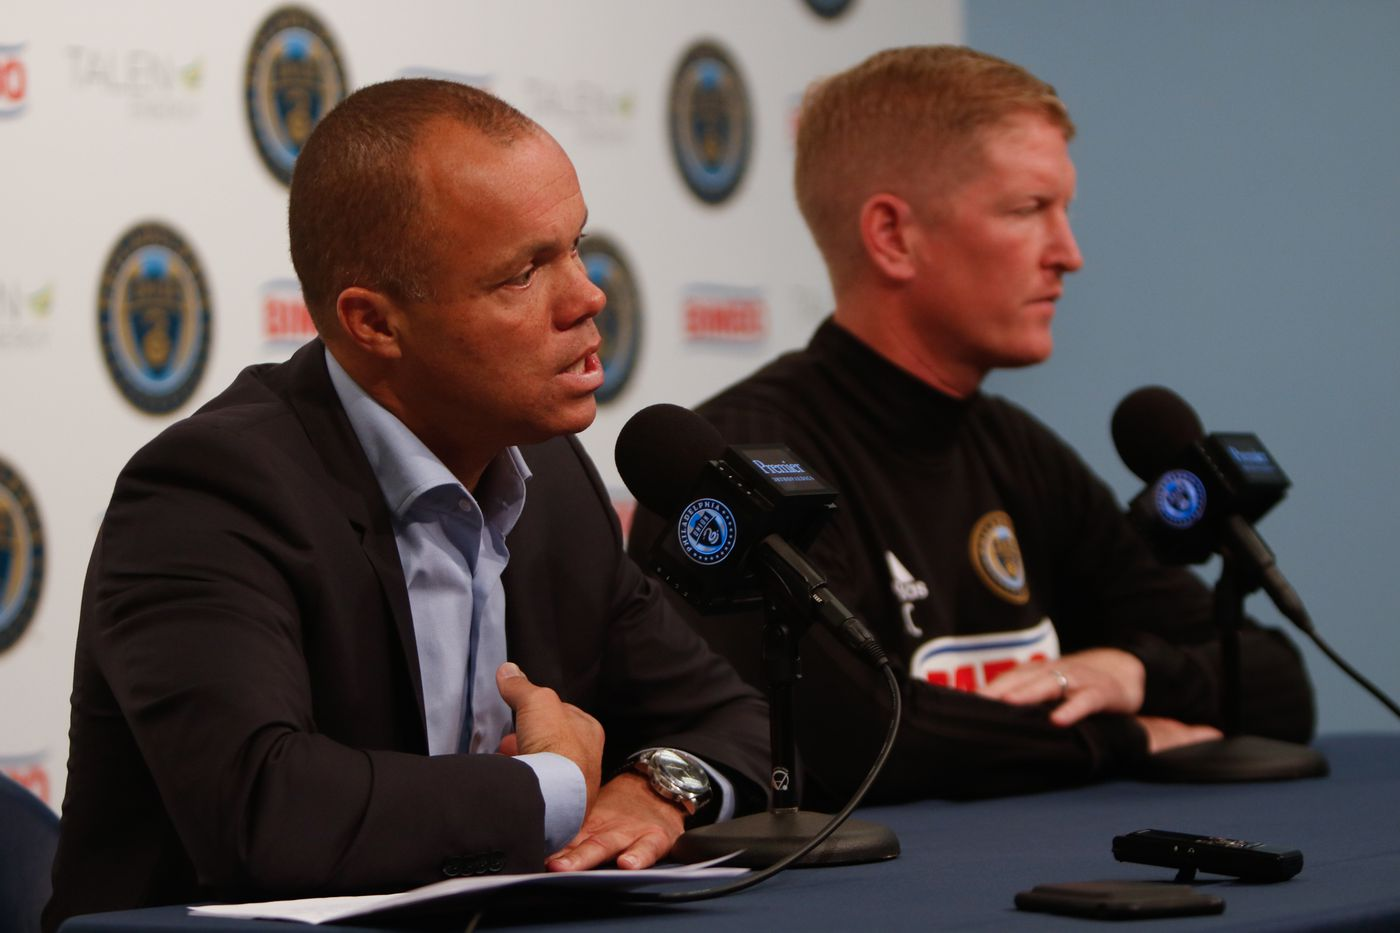 Earnie Stewart leaving Union at end of July to become GM of U.S. men's team